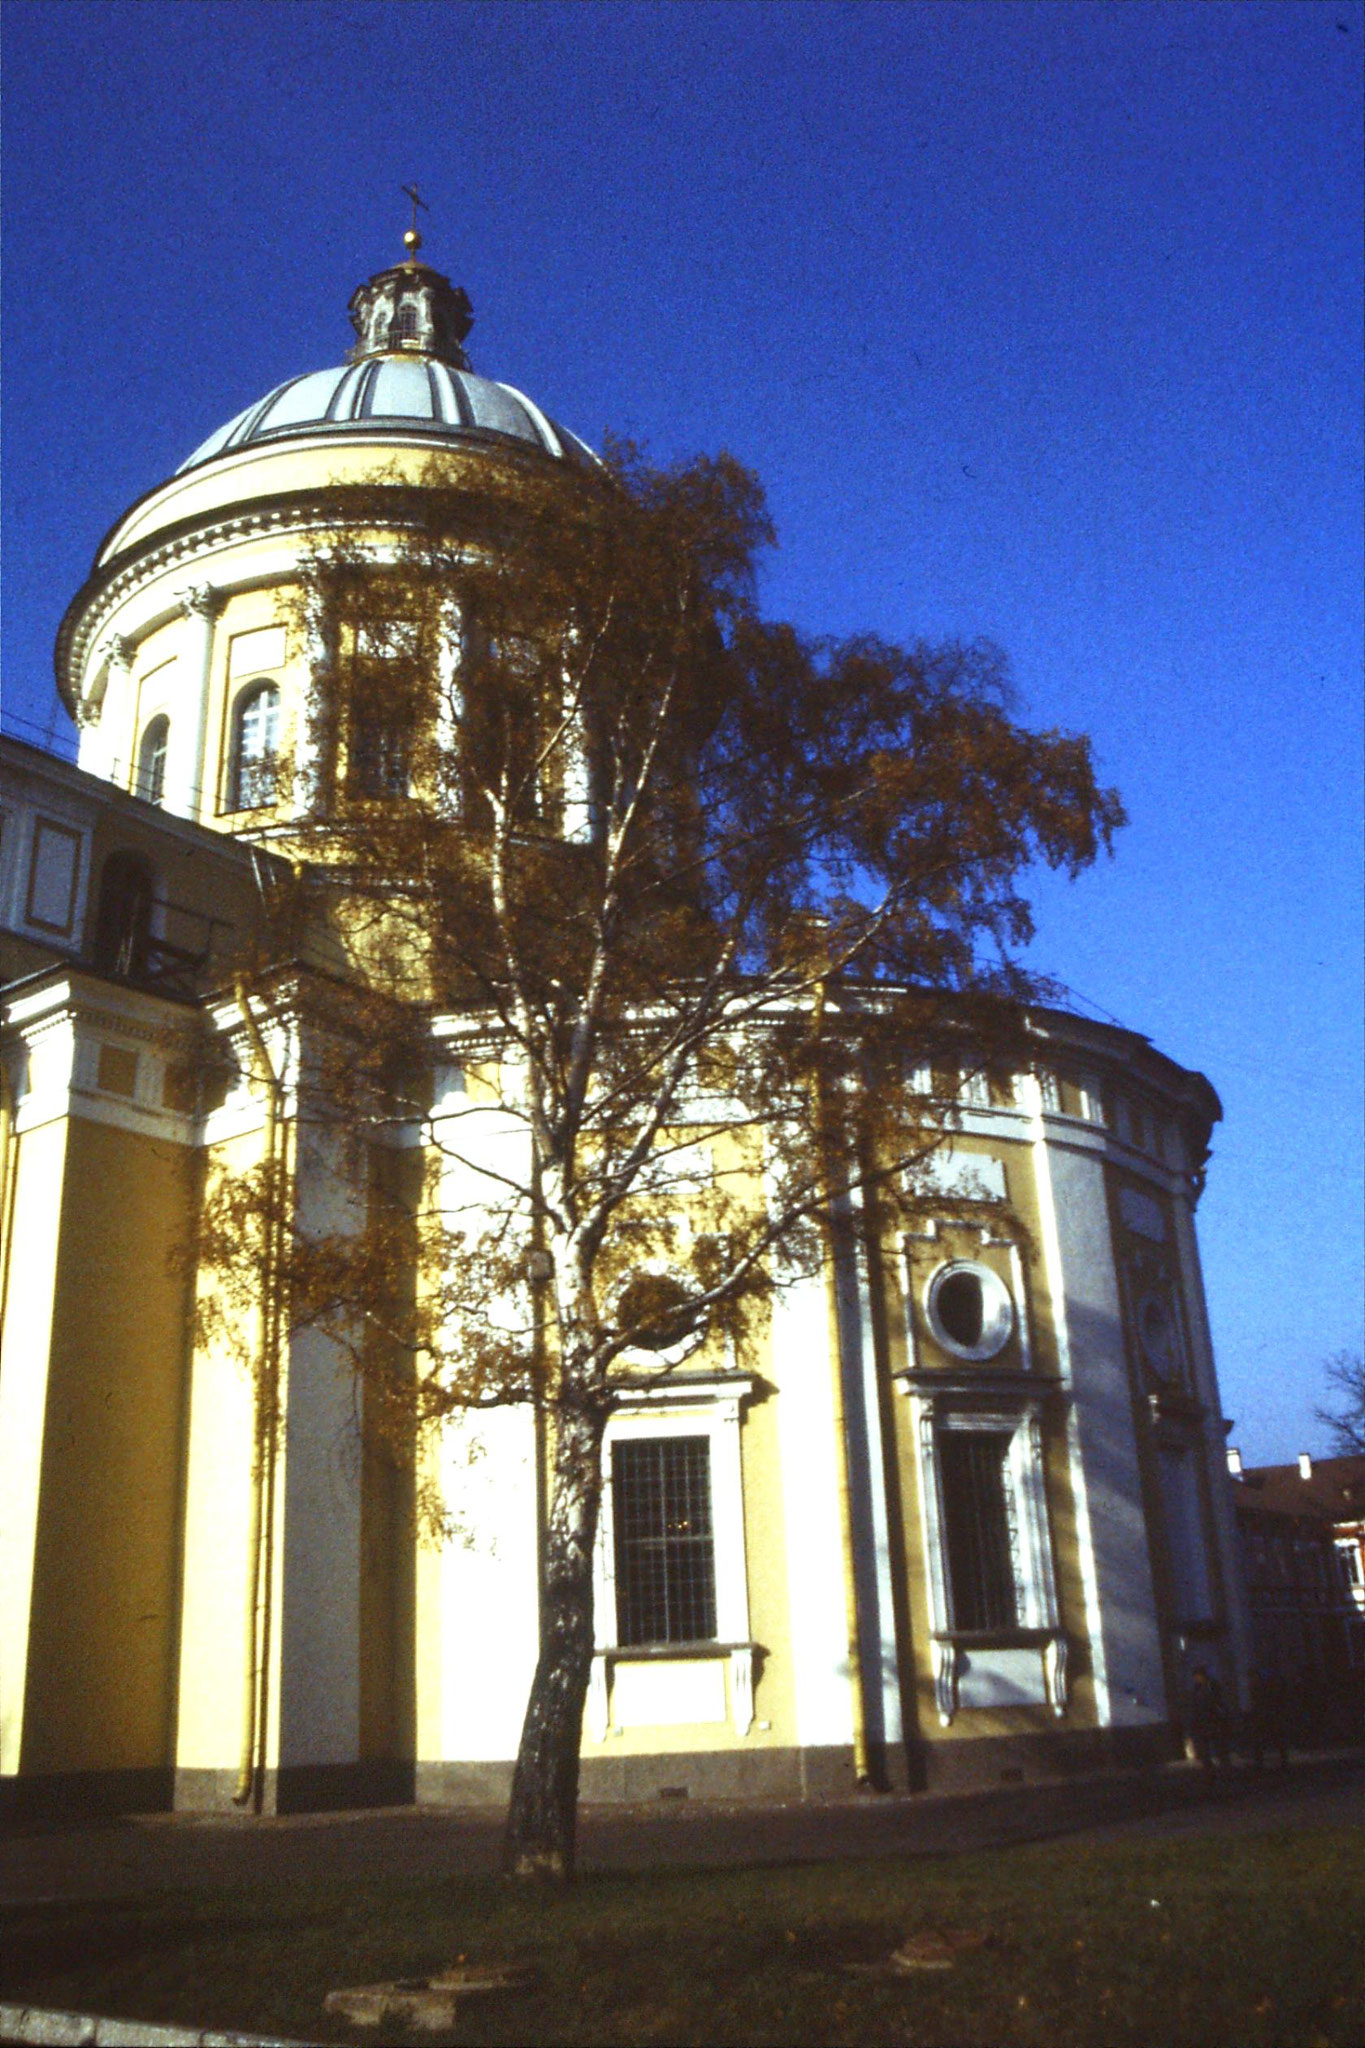 14/10/1988: 32: Monastery cathedral